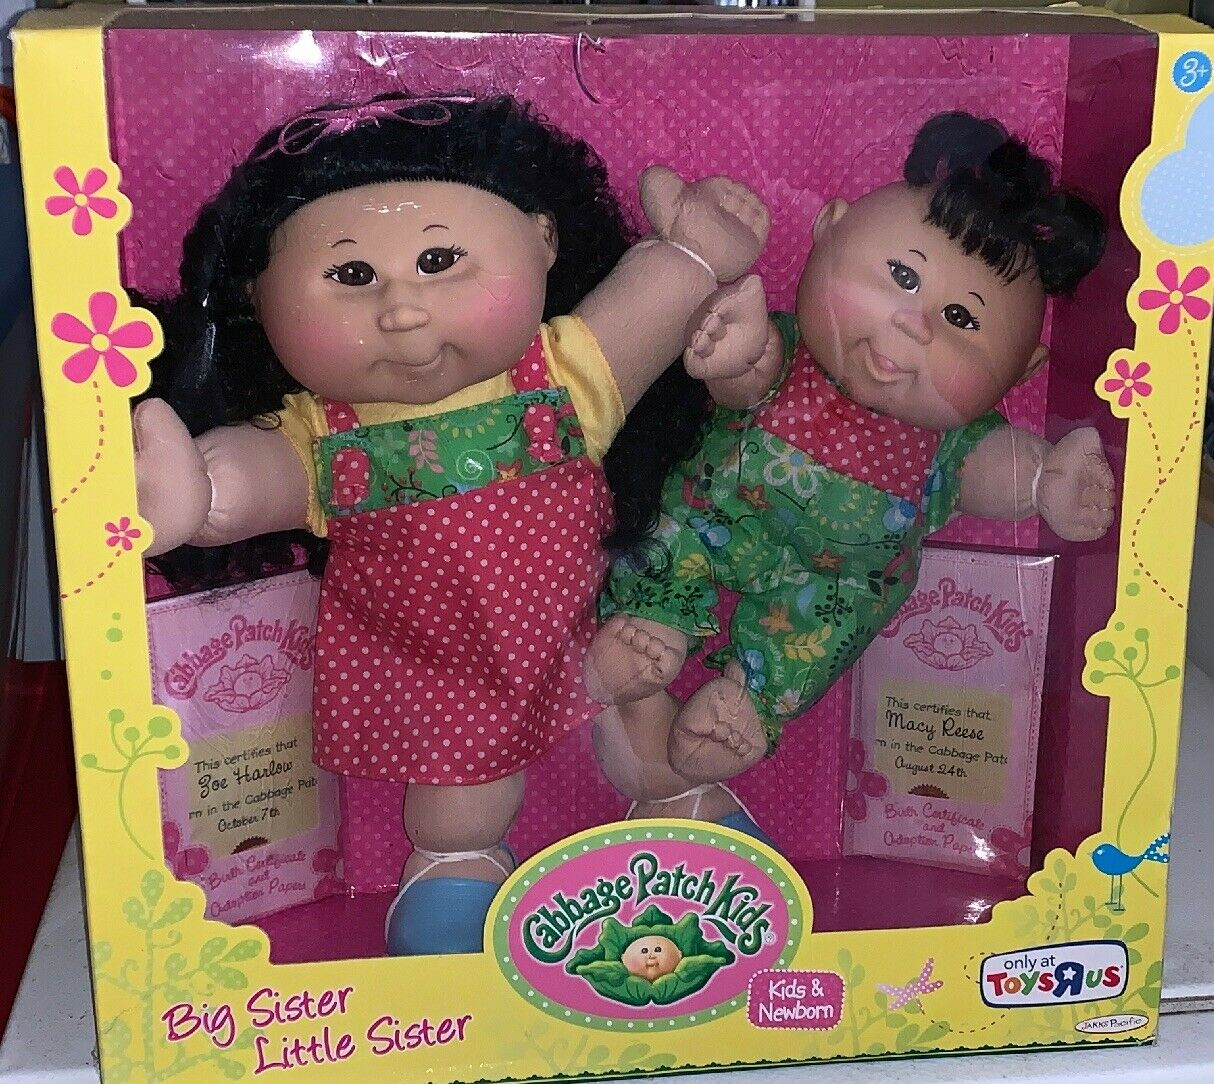 Cabbage patch kids cabbage patch kids naptime doll shop action figures dolls